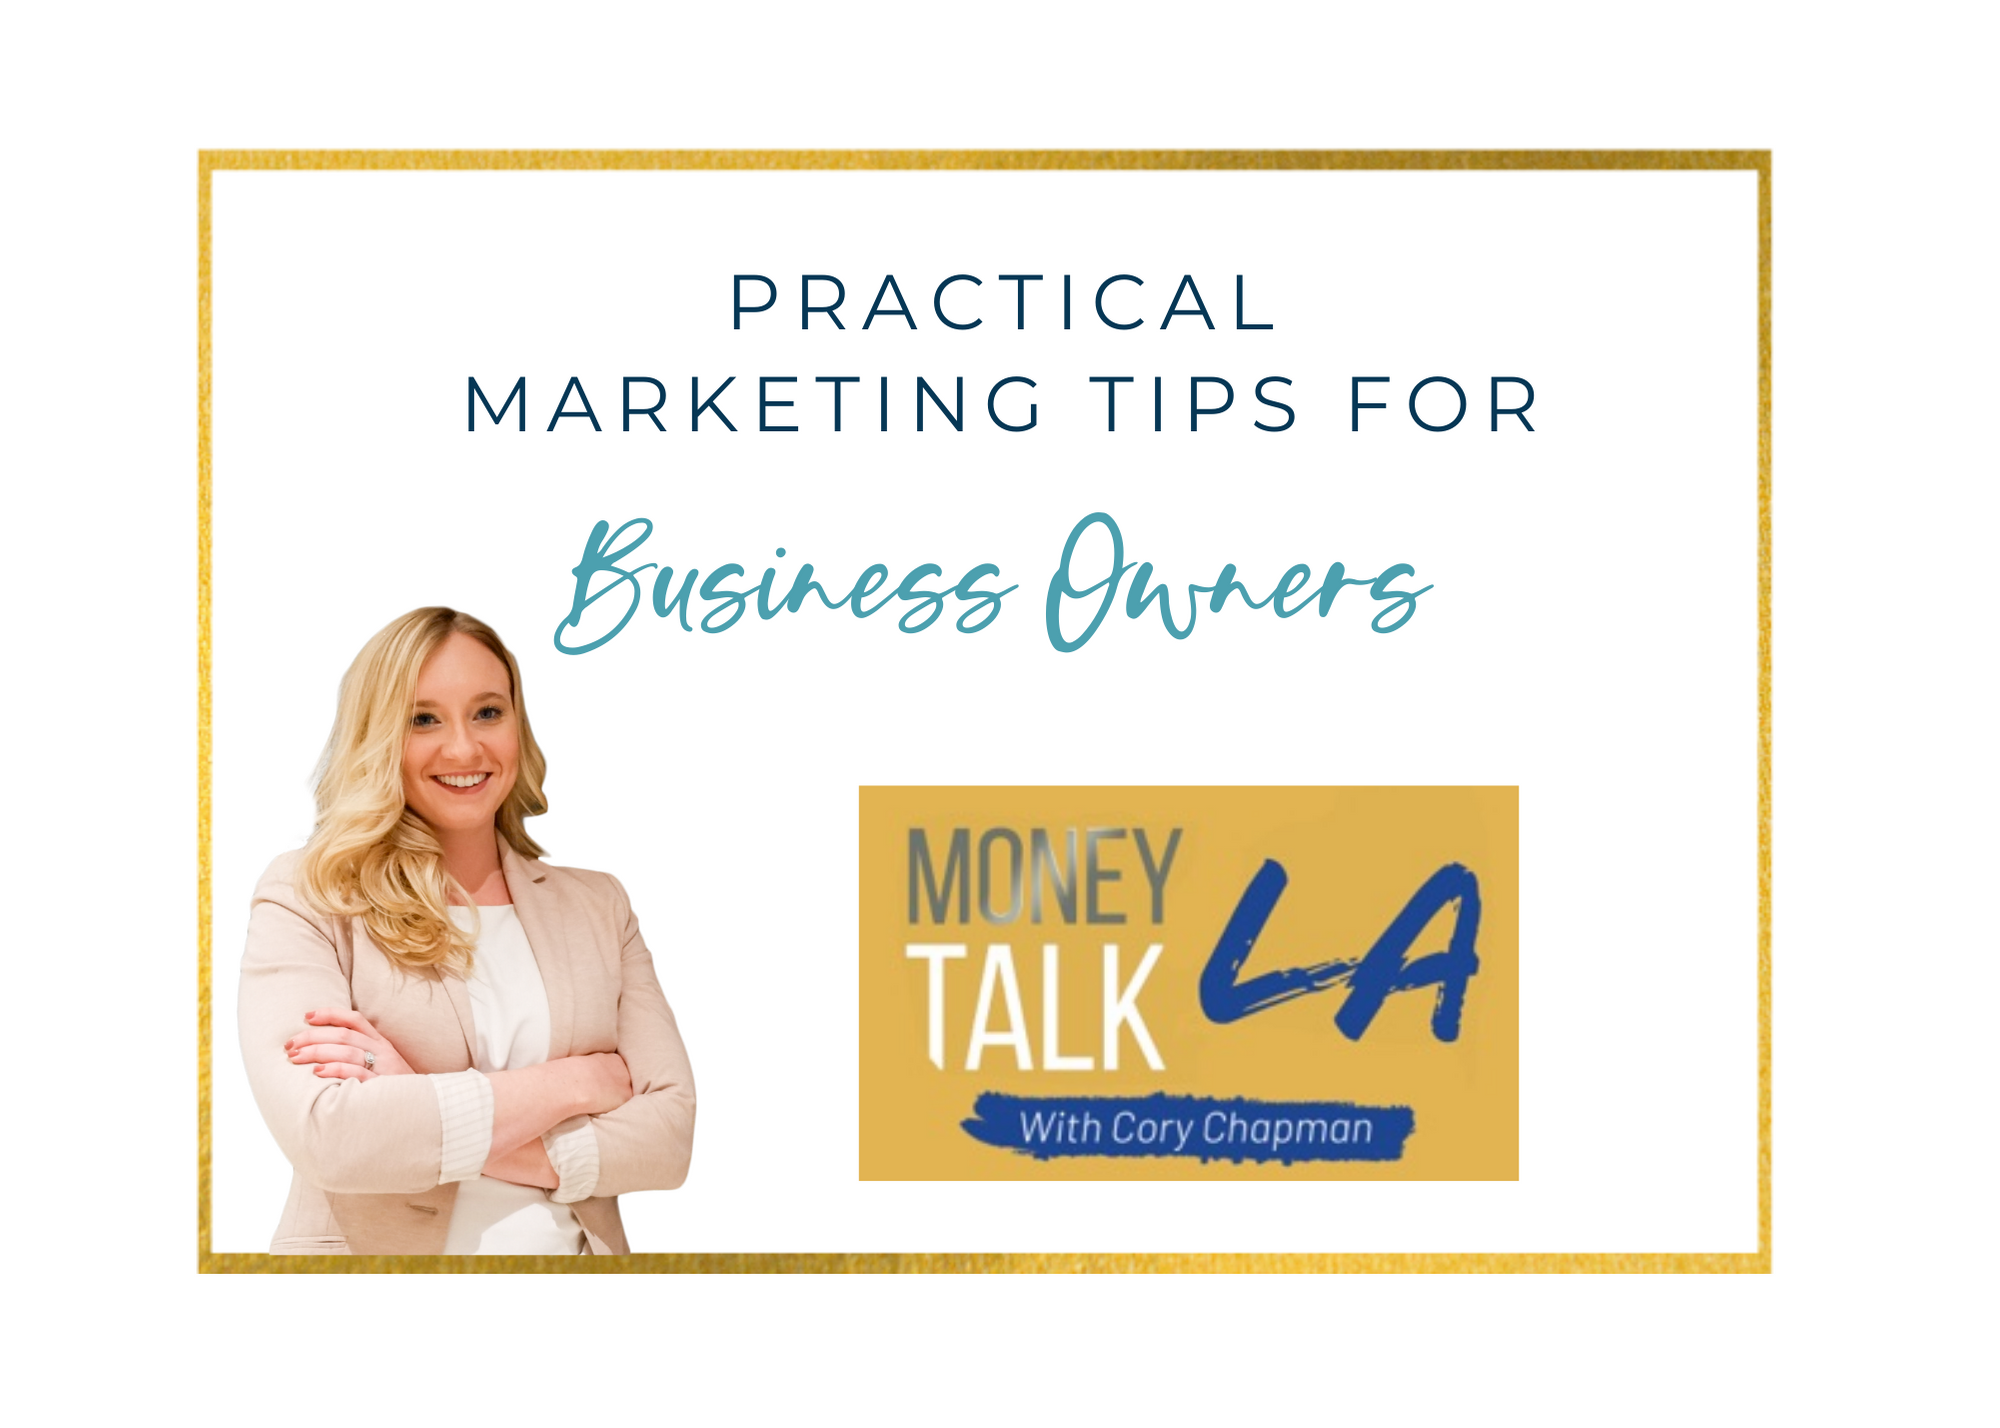 ashlee campbell marketing tips moneytalk la